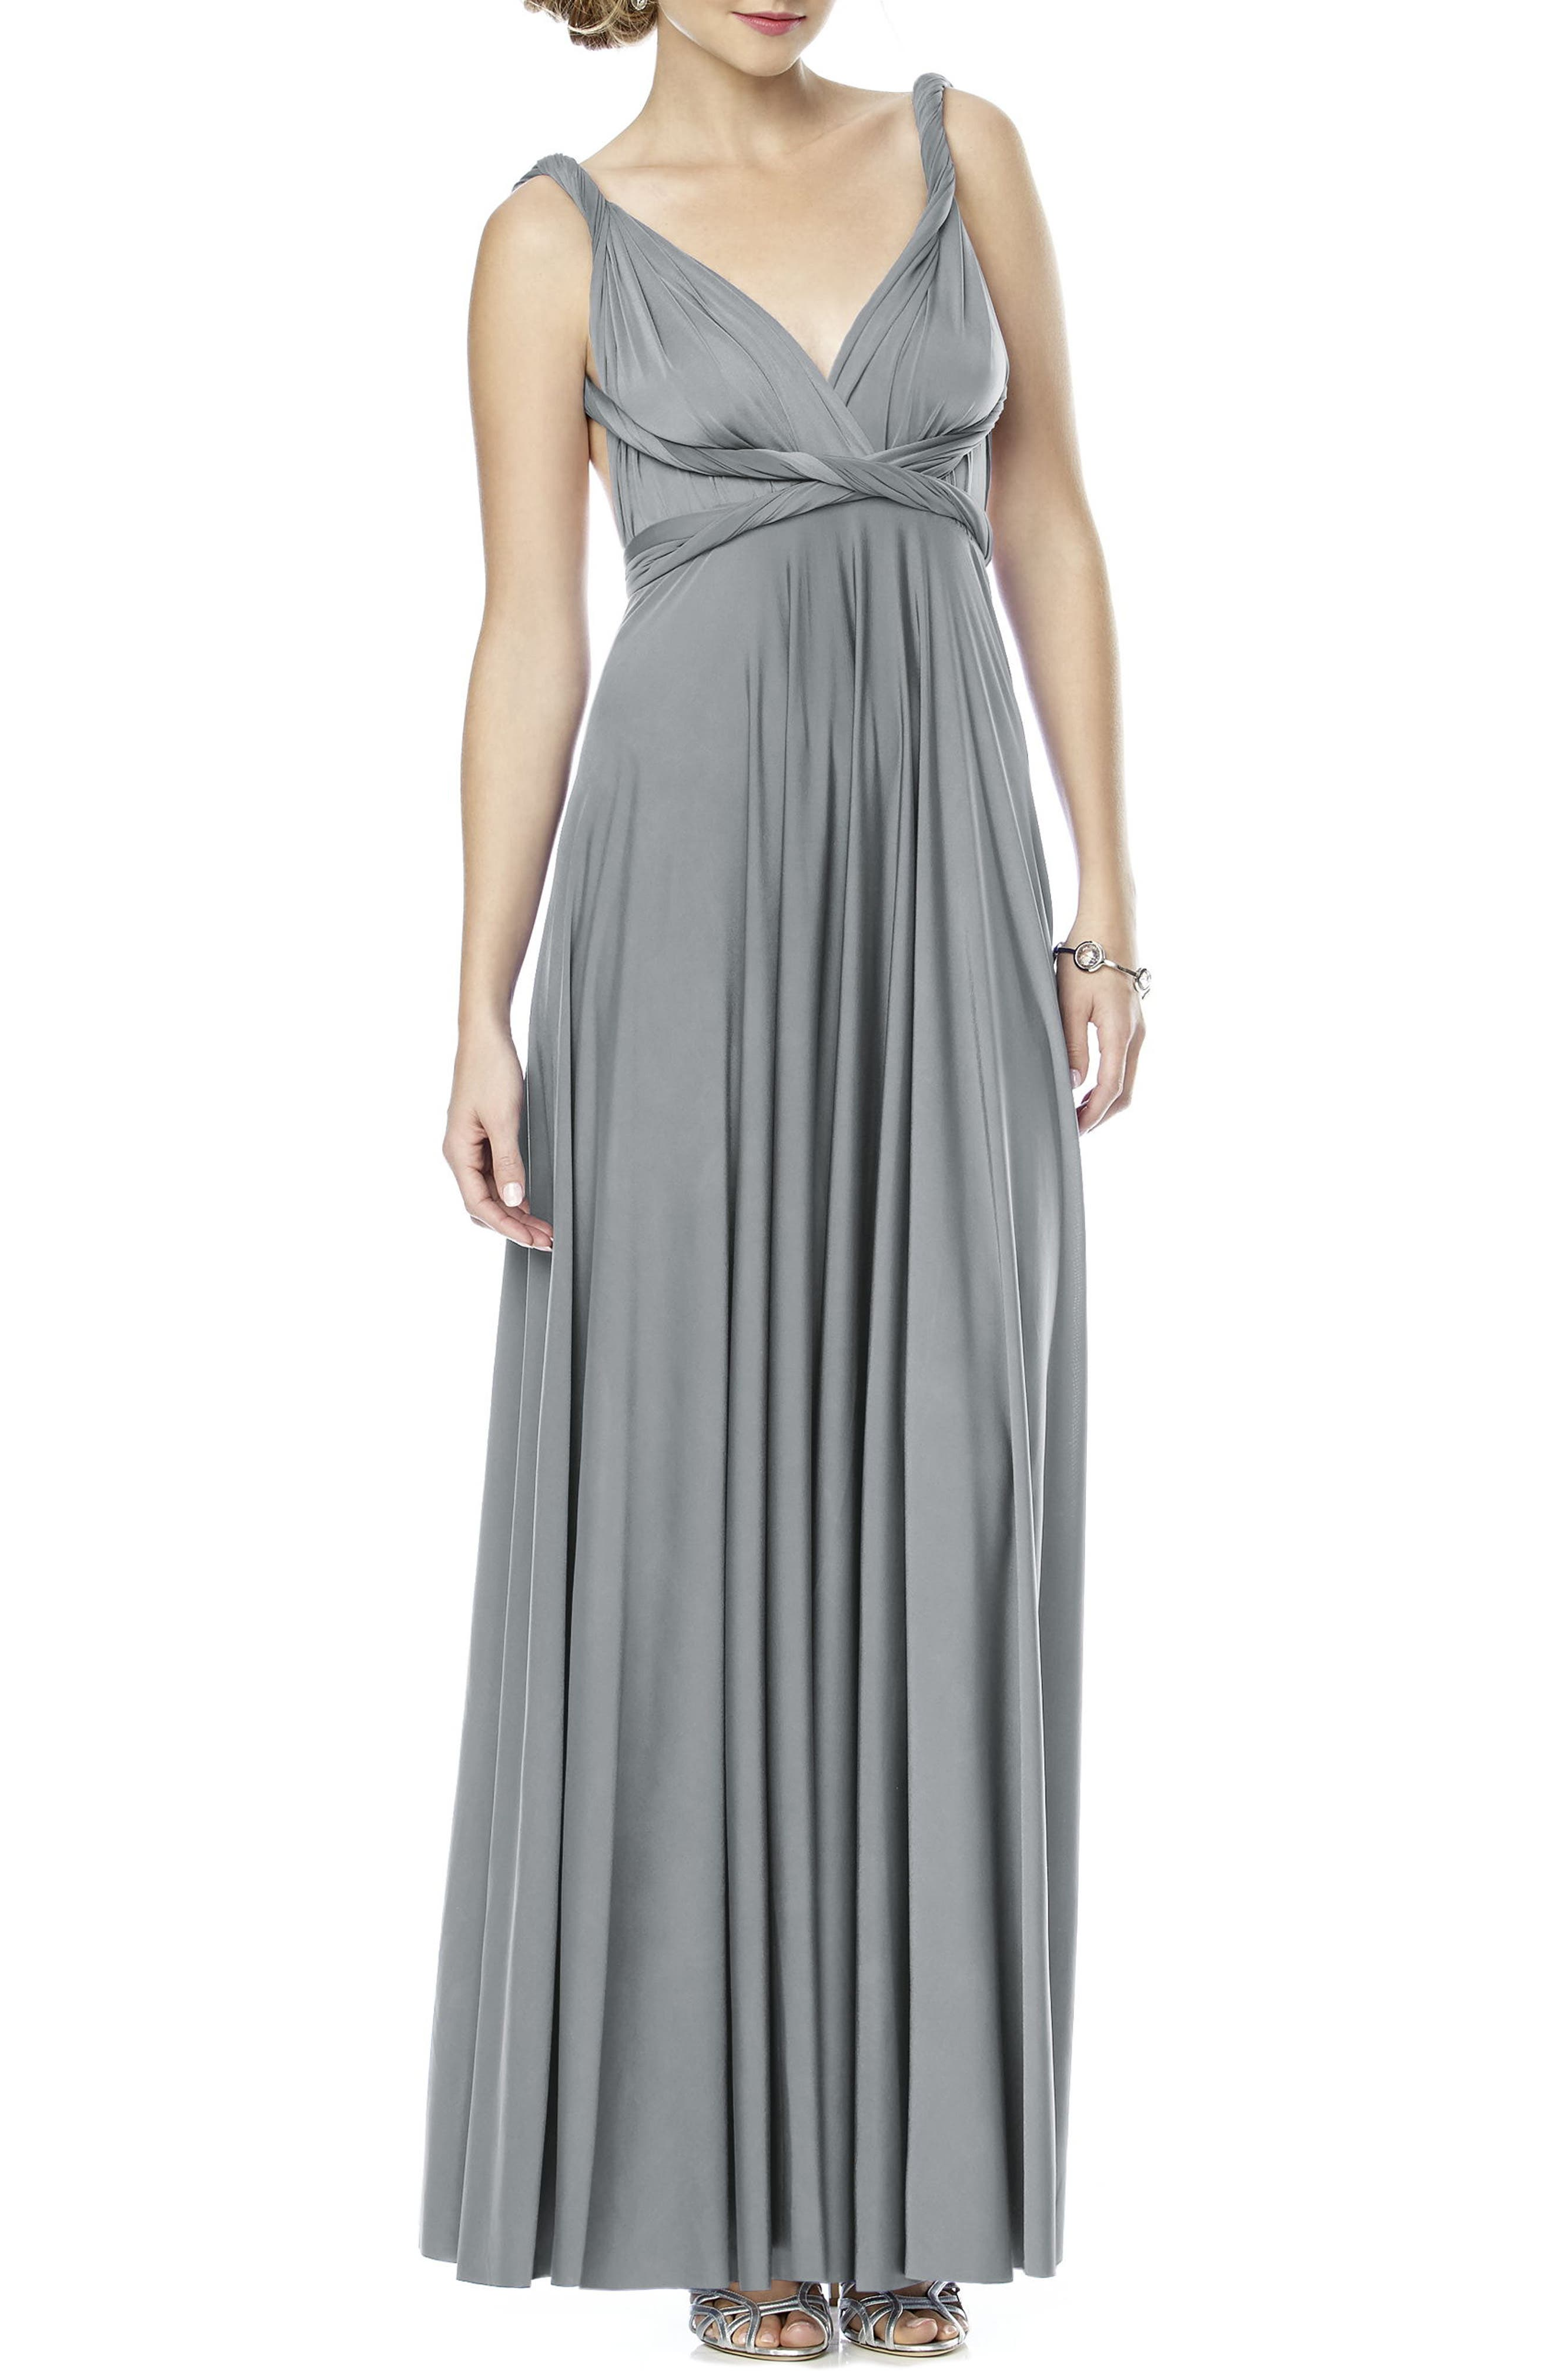 DESSY COLLECTION,                             Convertible Wrap Tie Surplice Jersey Gown,                             Alternate thumbnail 3, color,                             033